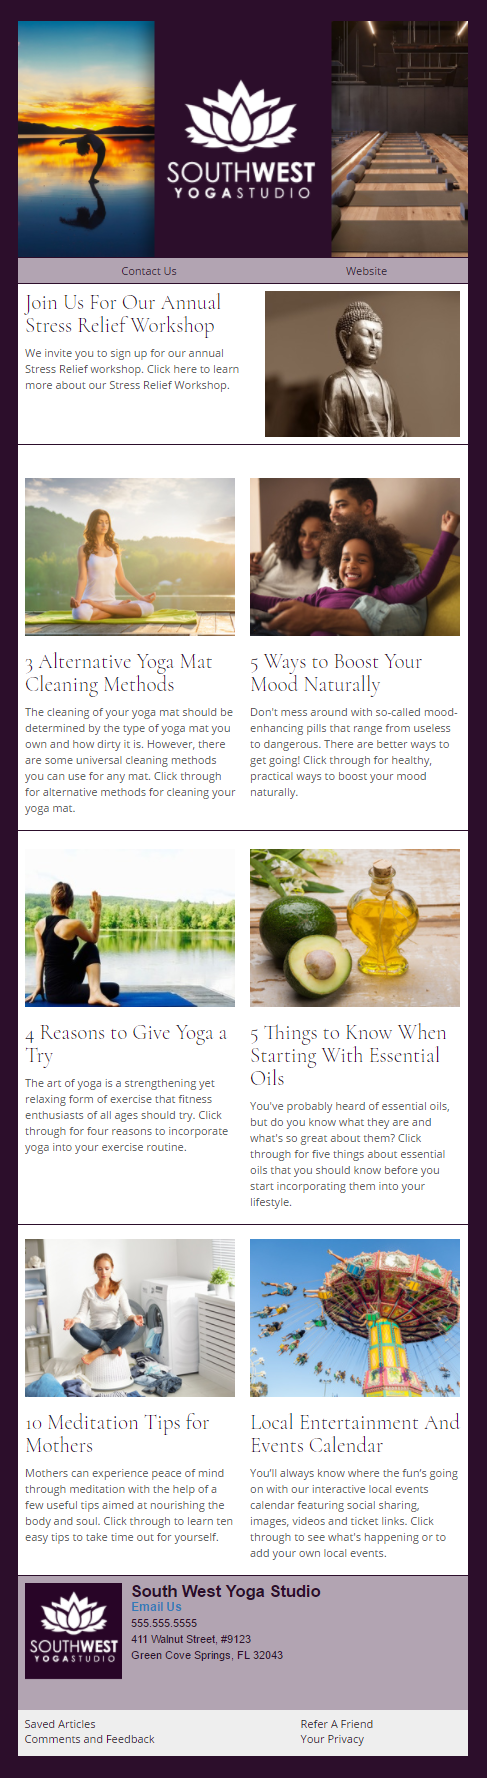 South West Yoga Studio health and wellness Email Newsletter Preview